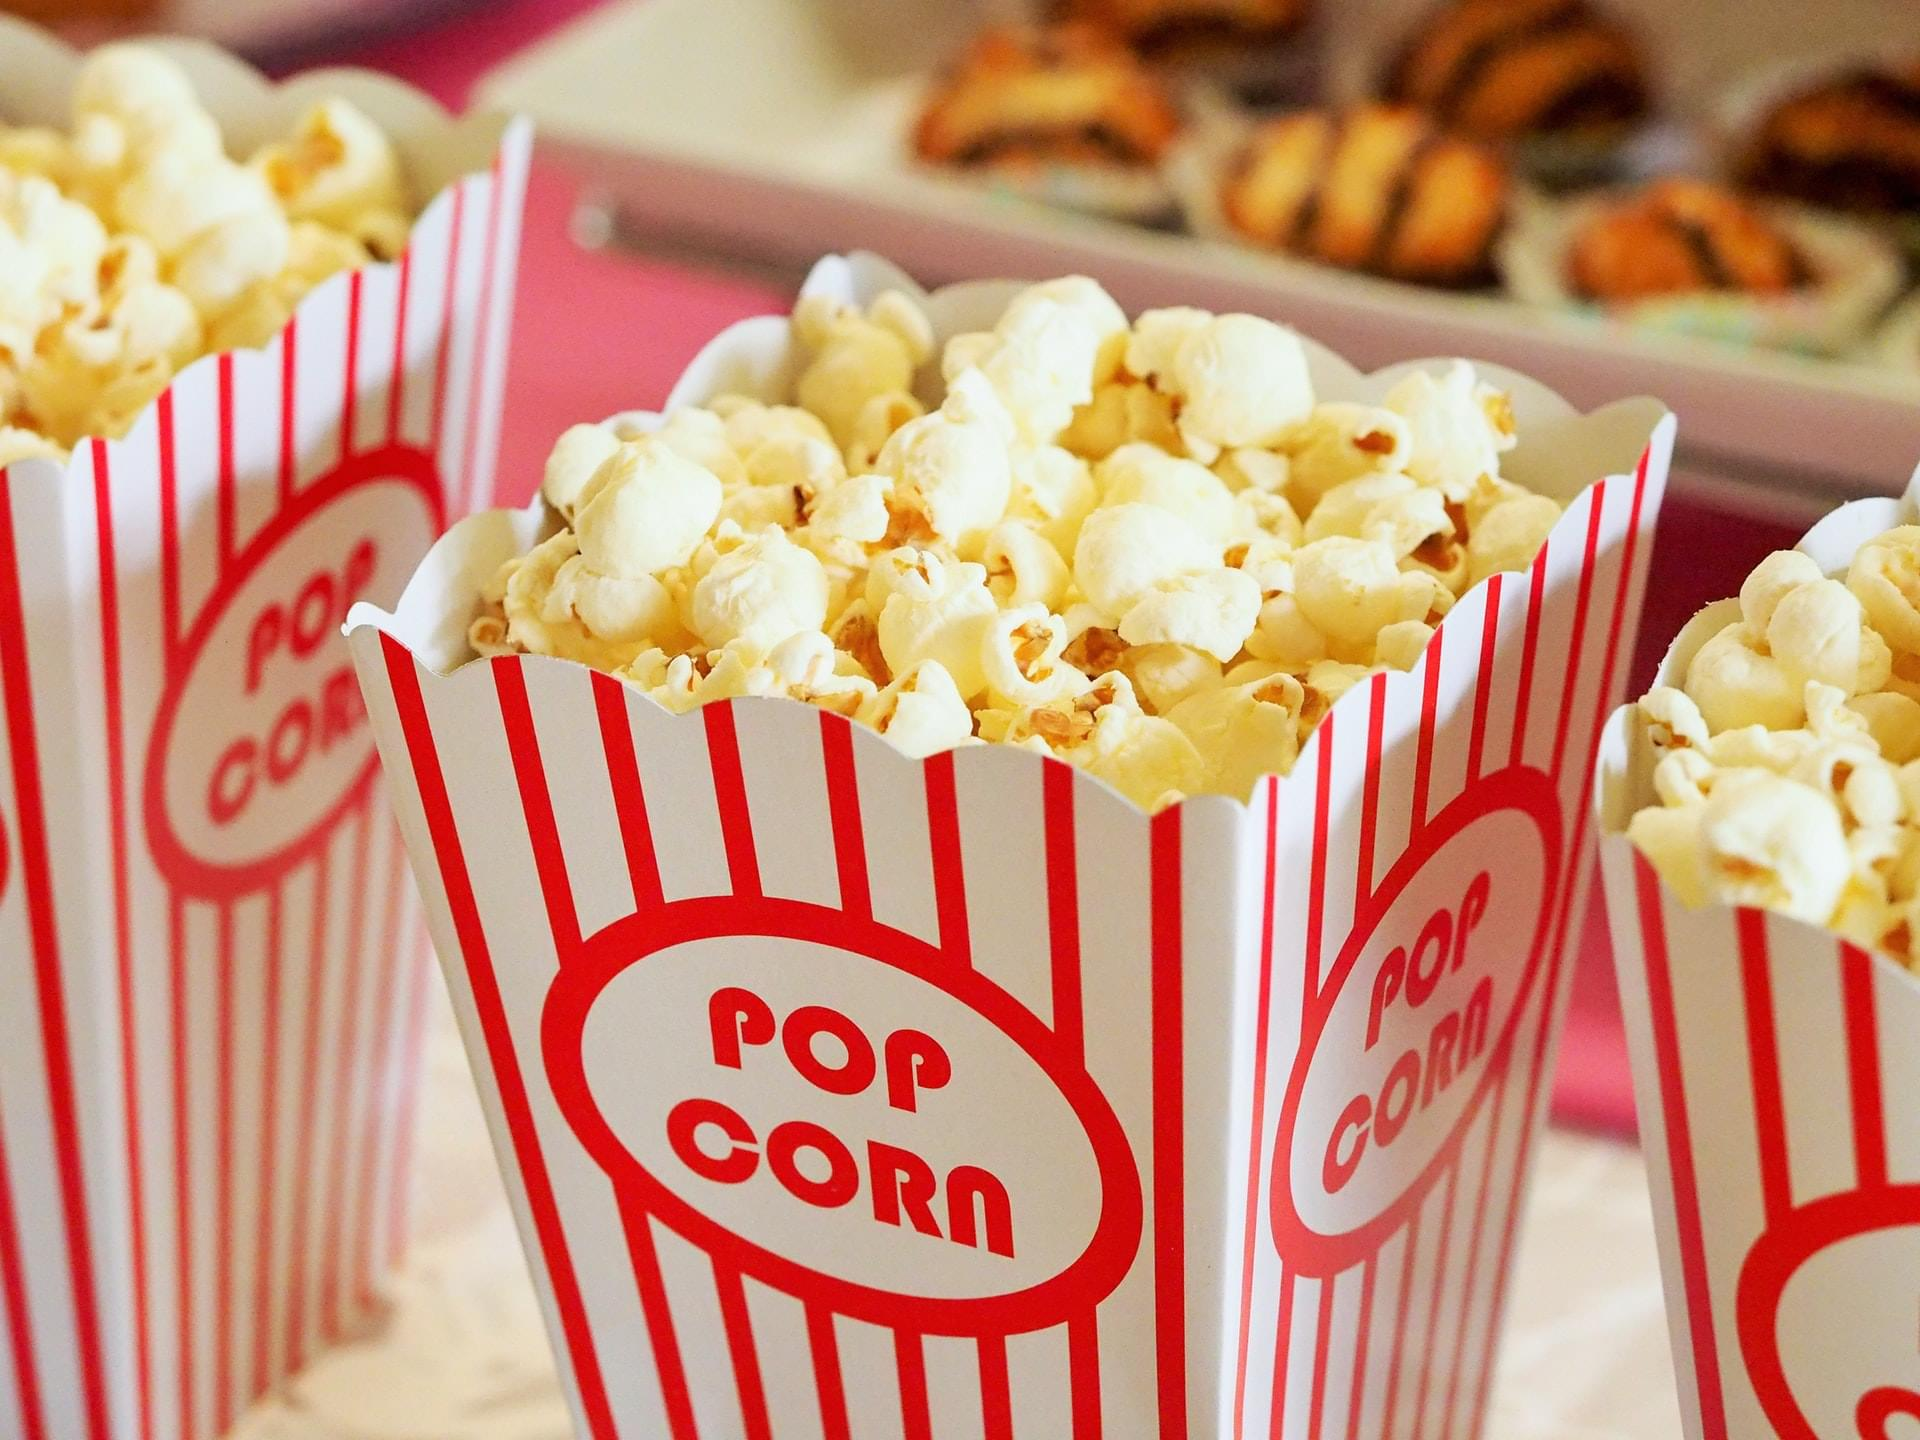 Marriage Declared Over Because of Popcorn